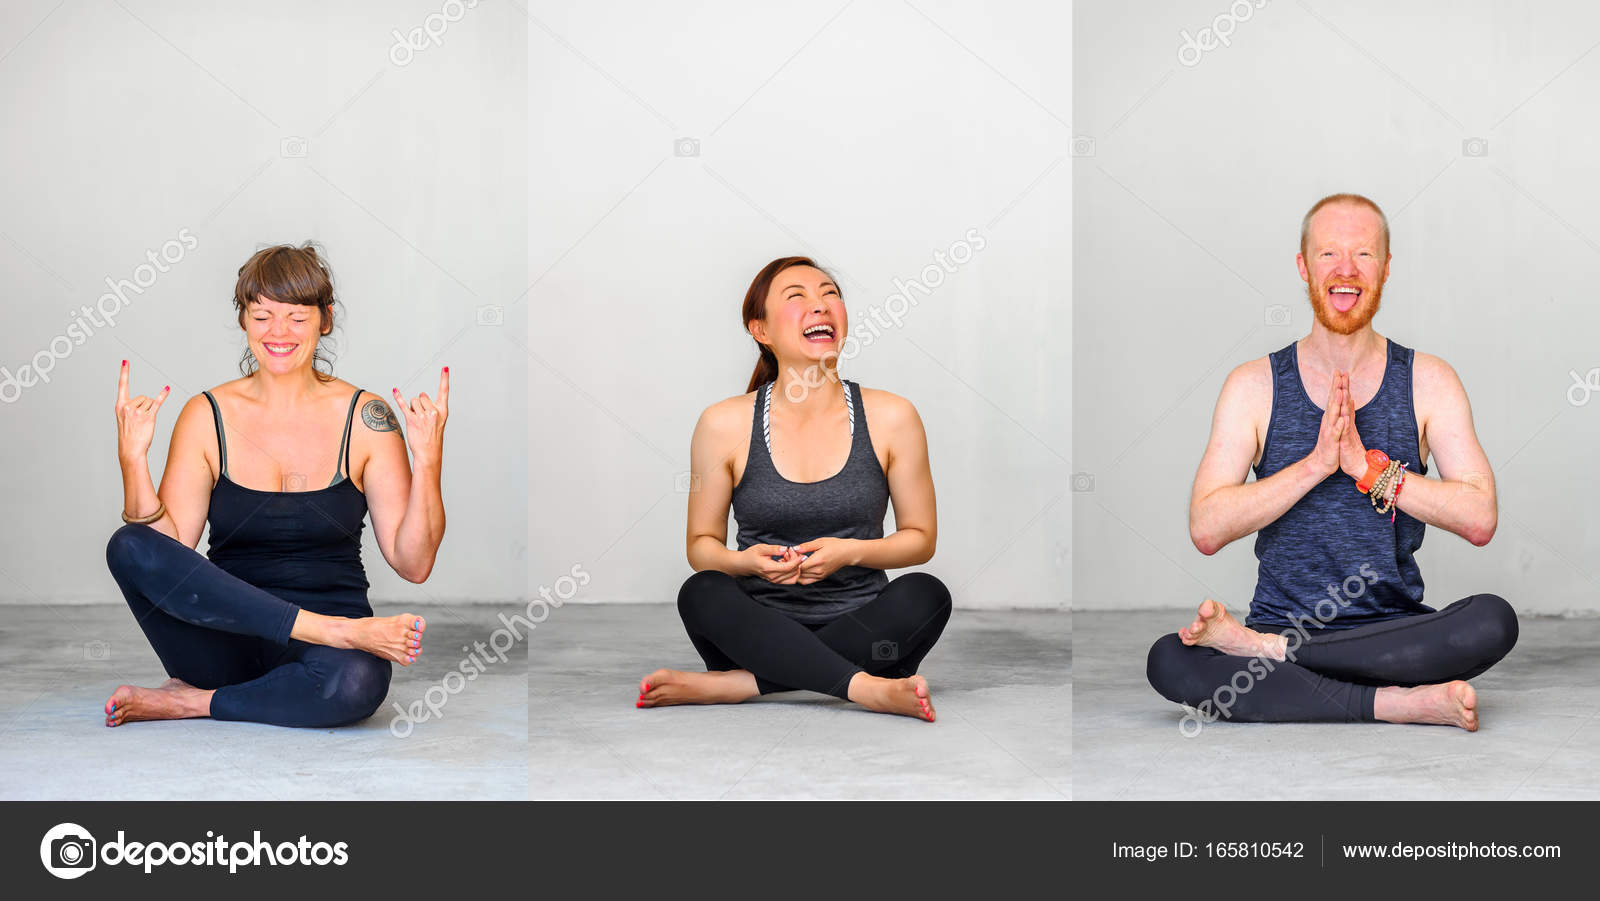 Three People Yoga Poses Yoga Students Showing Different Yoga Poses Three People Stock Photo C Schamin 165810542